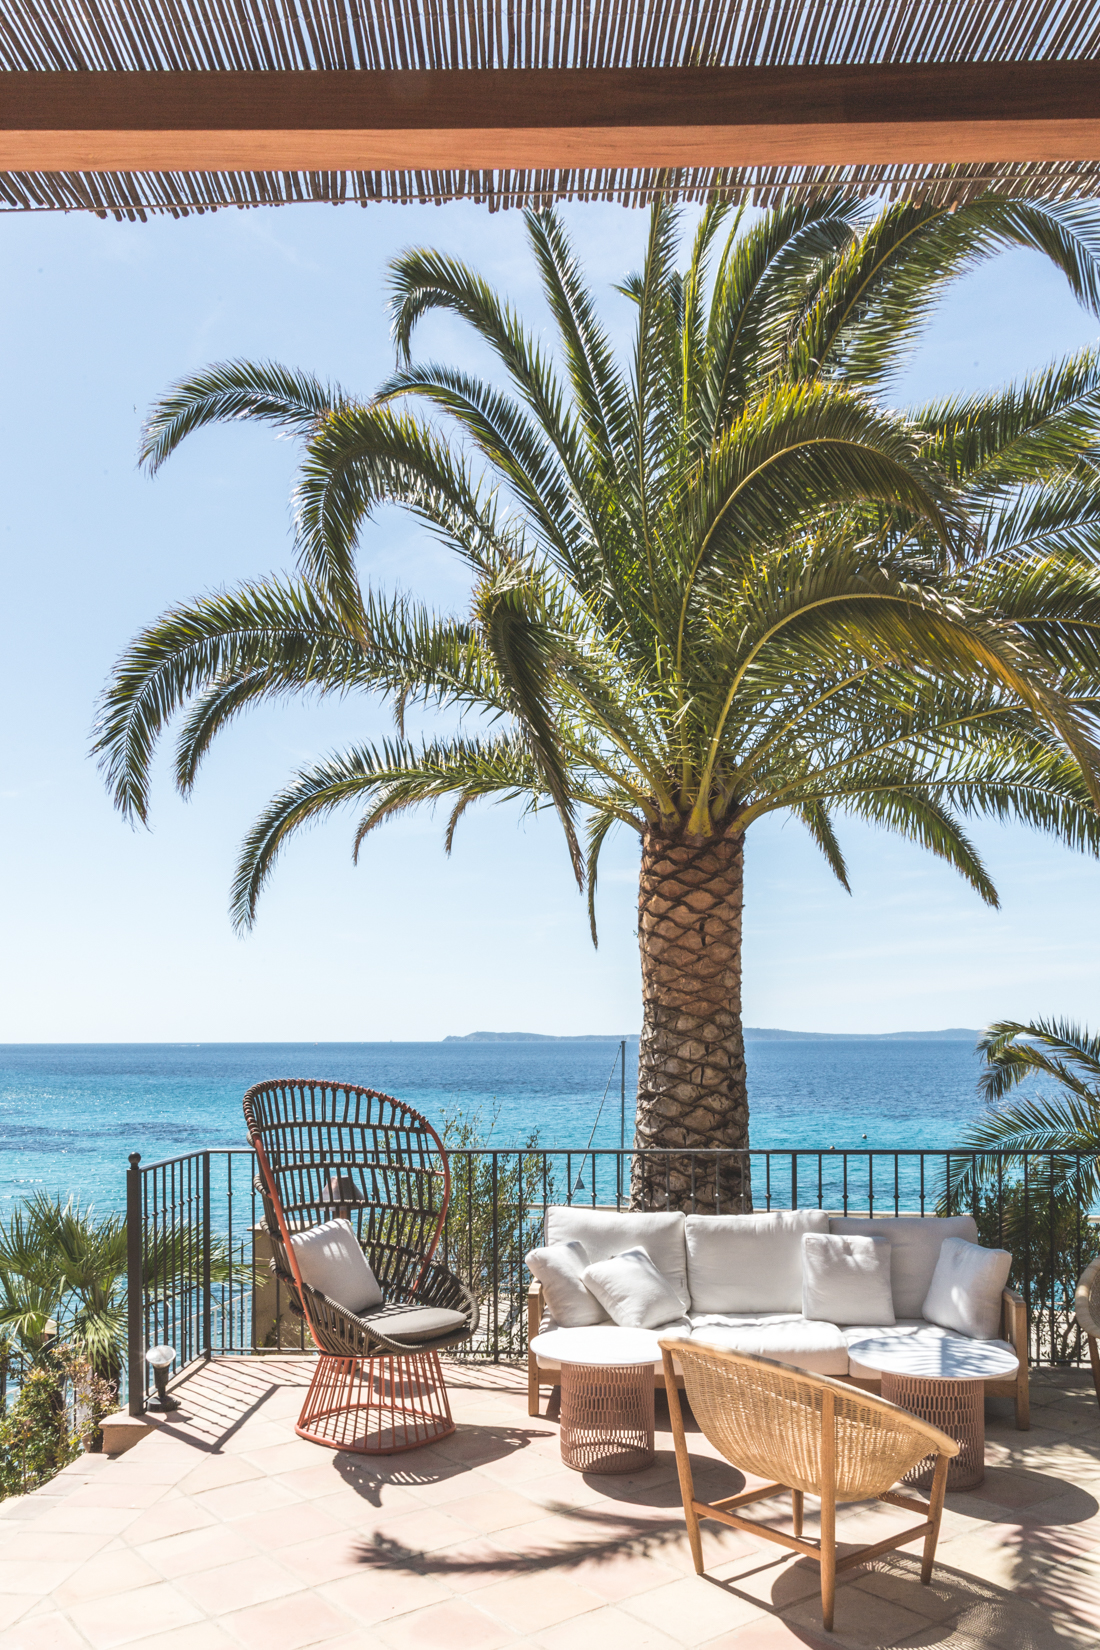 lebaillidesuffren_hotel_french_riviera_travel_lifestyle_blogger_review_saint_tropez_copyright_Pauline_Privez_paulinefashionblog_com-18